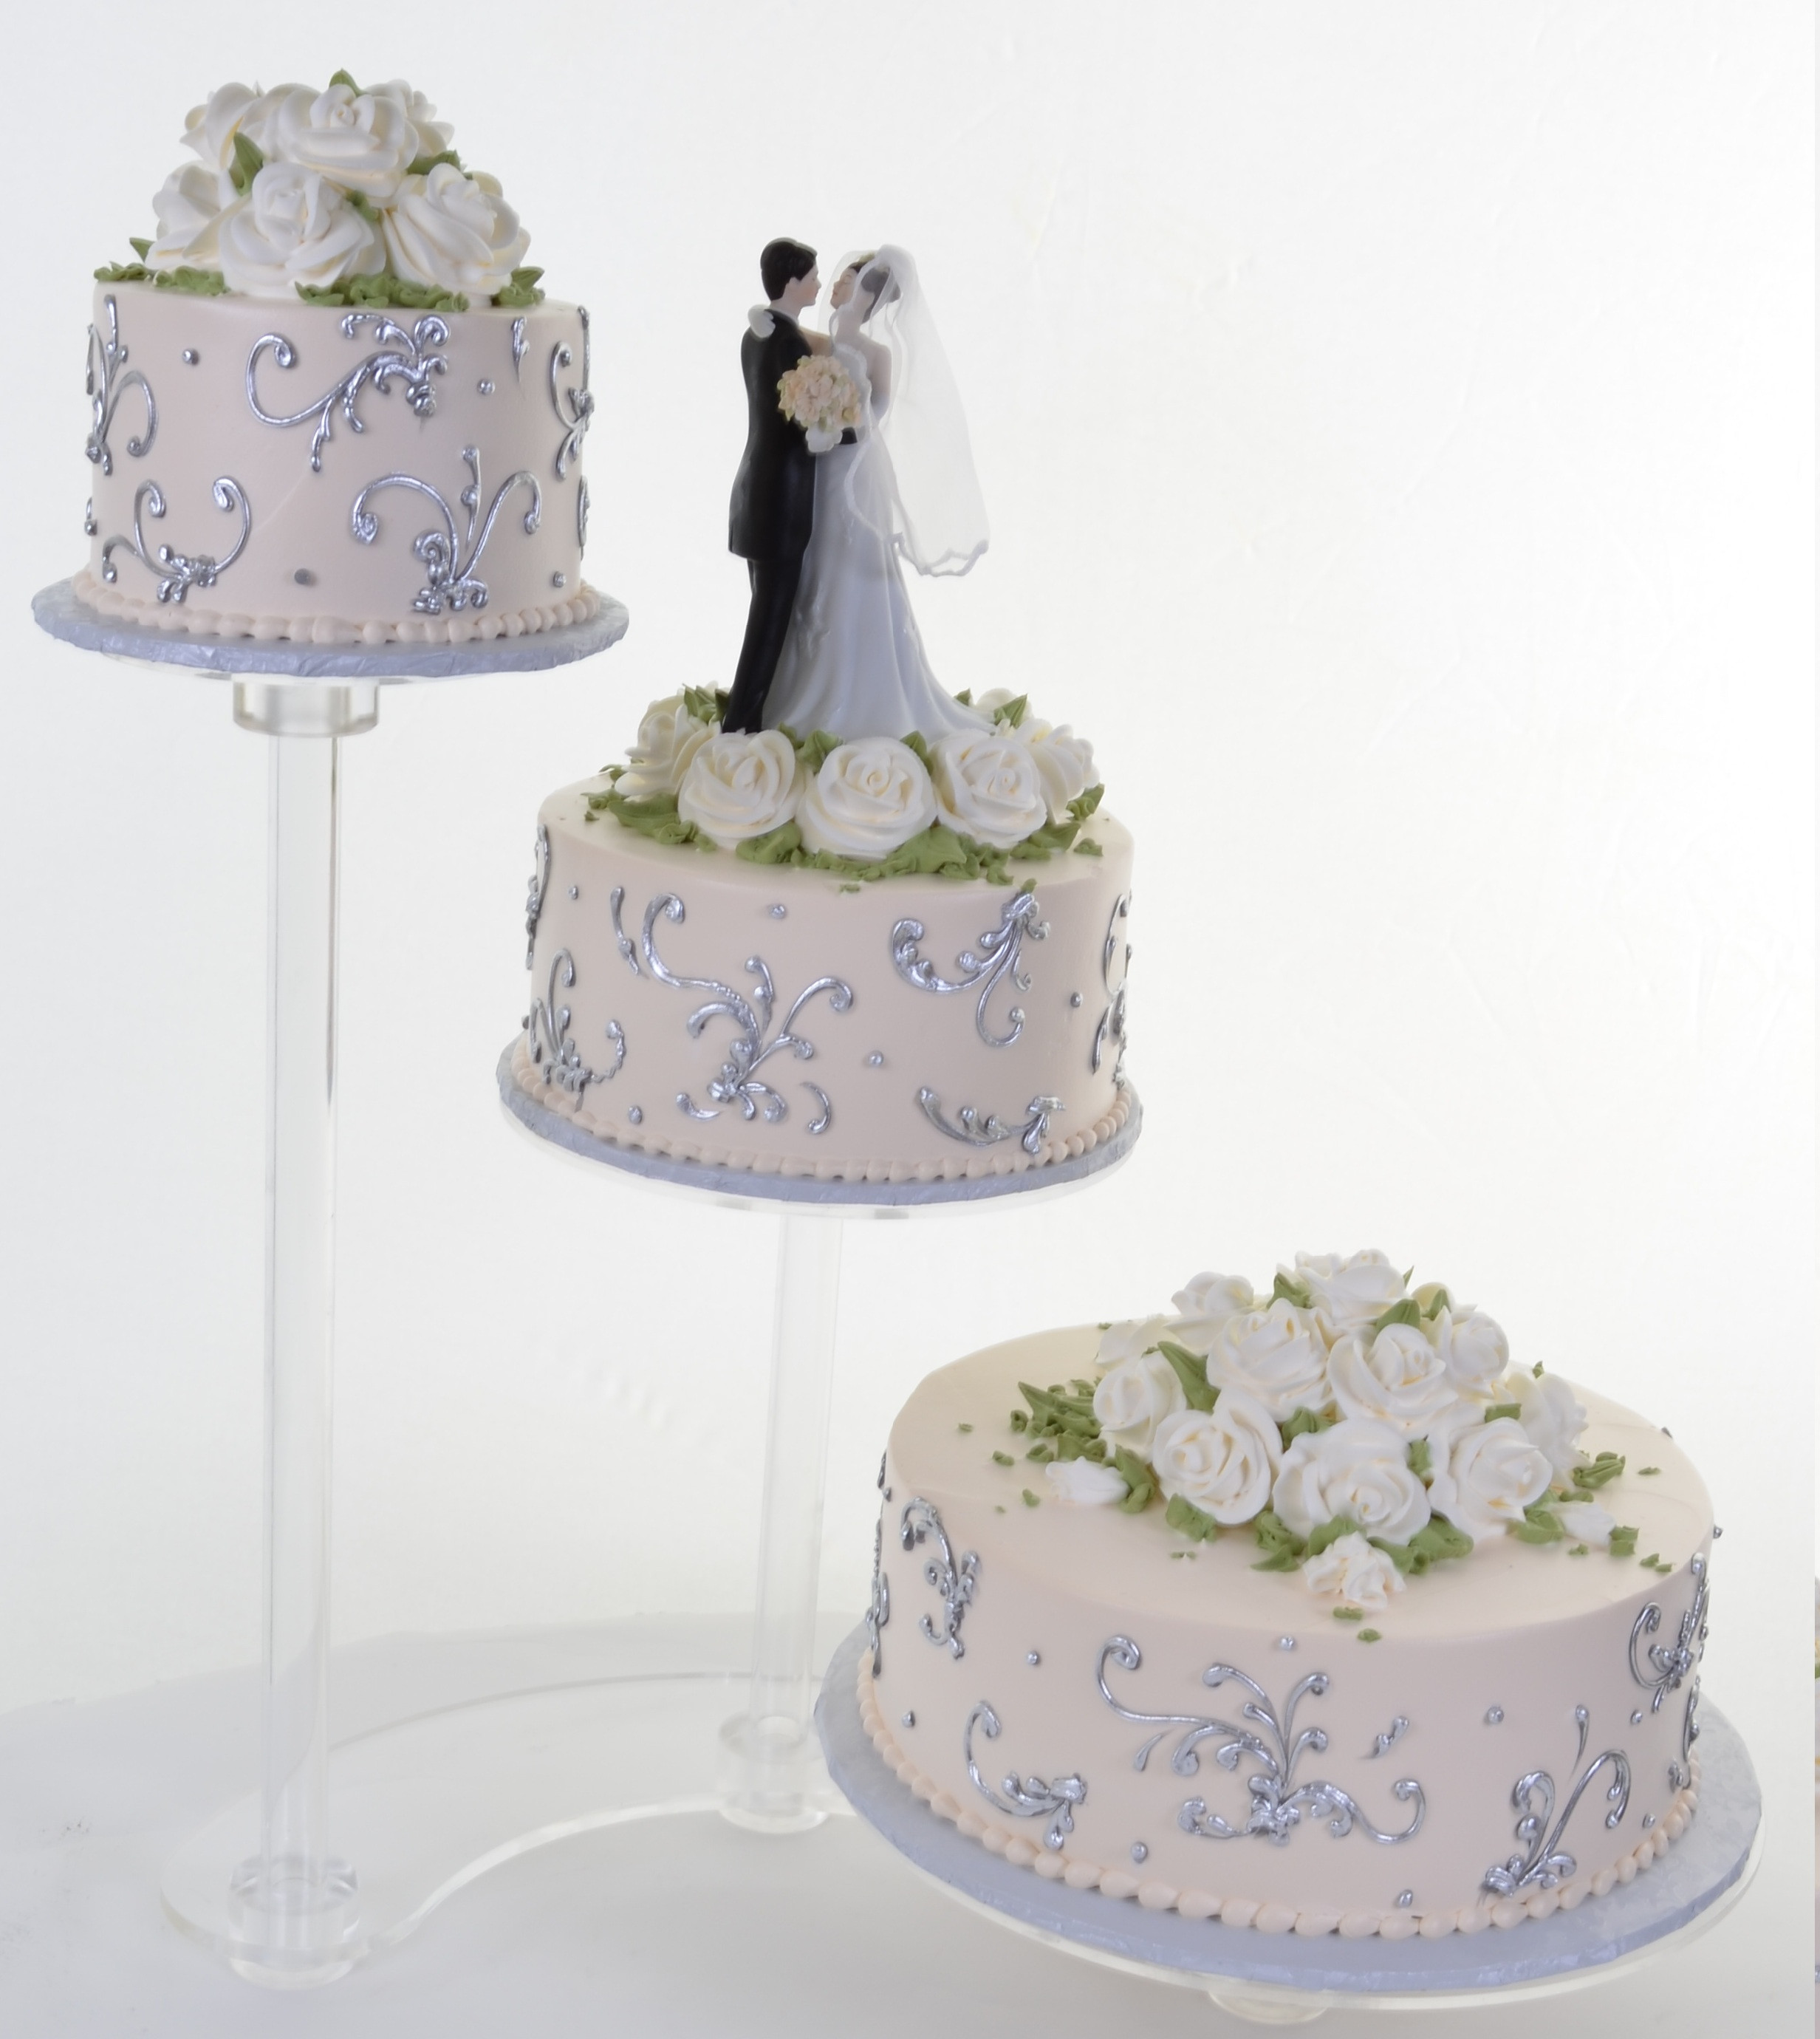 Seperate Tier Wedding Cakes  Separate Tier Wedding Cakes